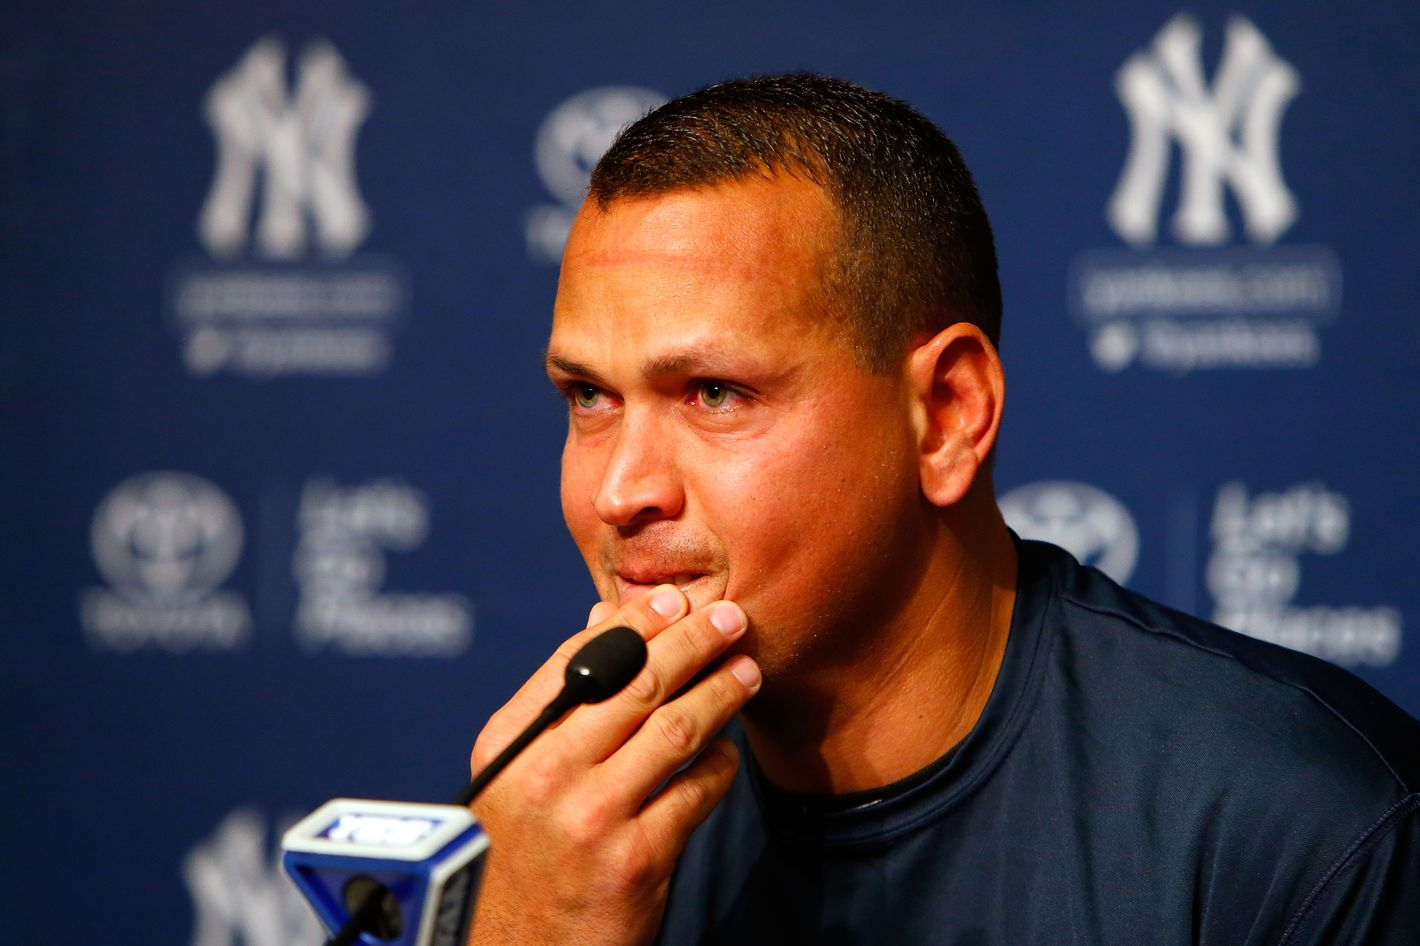 Ticket prices for A-Rod's final game spike 500%